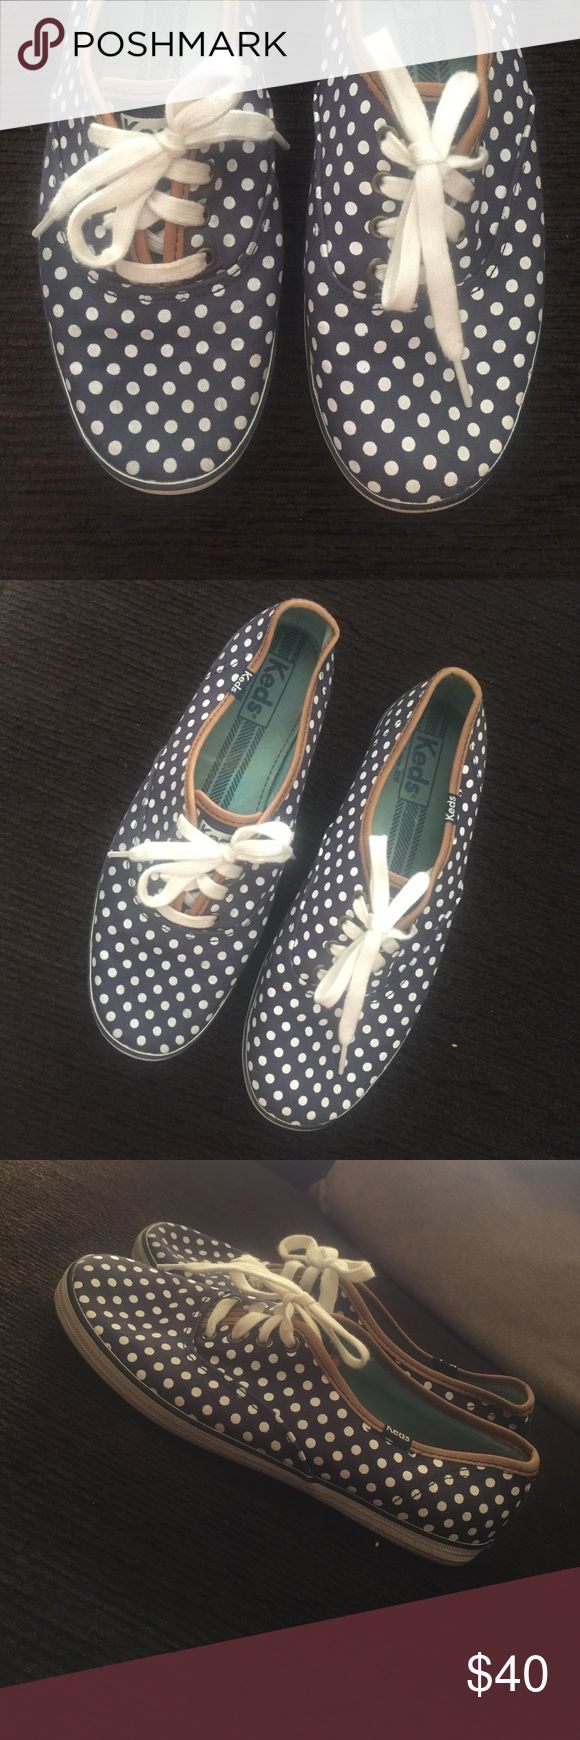 KEDS tennis shoes Used, but great condition, navy blue with white polka dots, only worn a few times Keds Shoes Sneakers